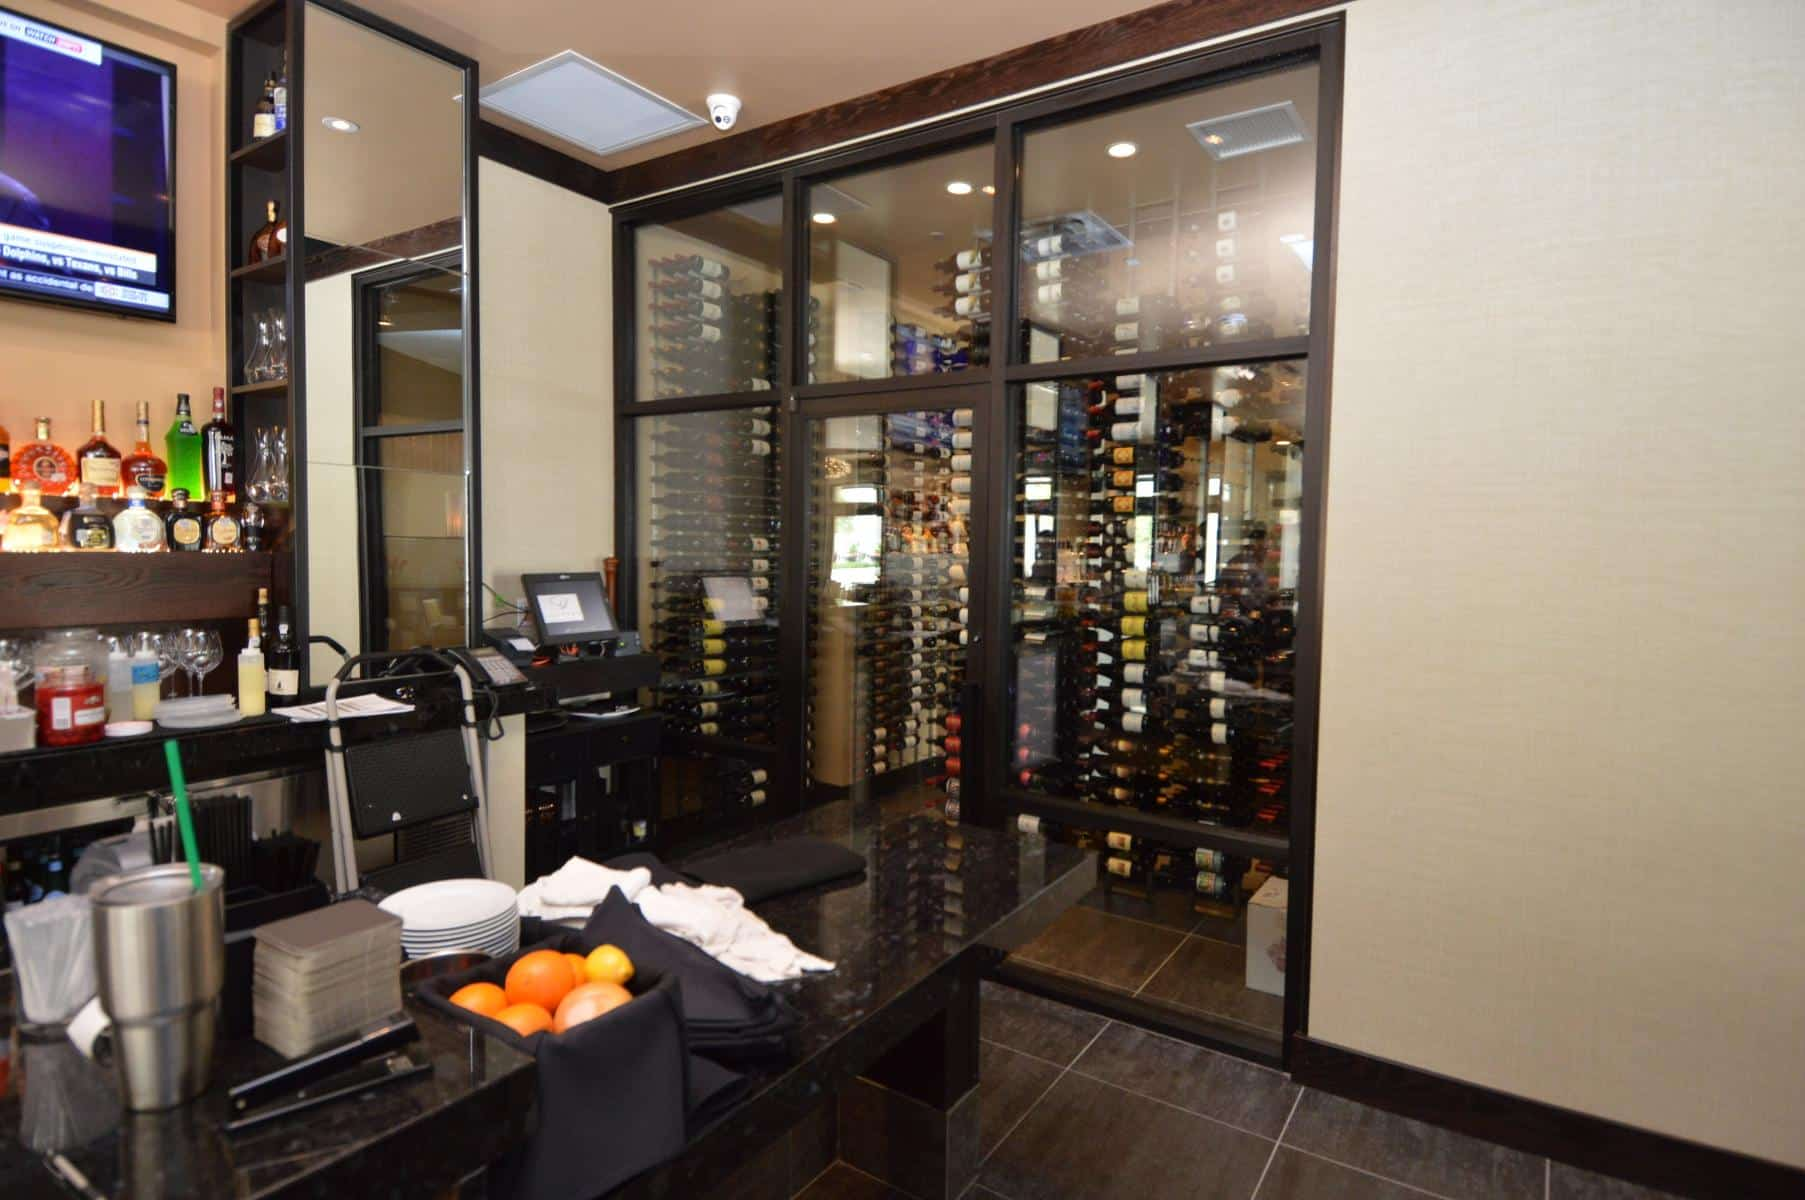 A view from Outside the Commercial Wine Cellar